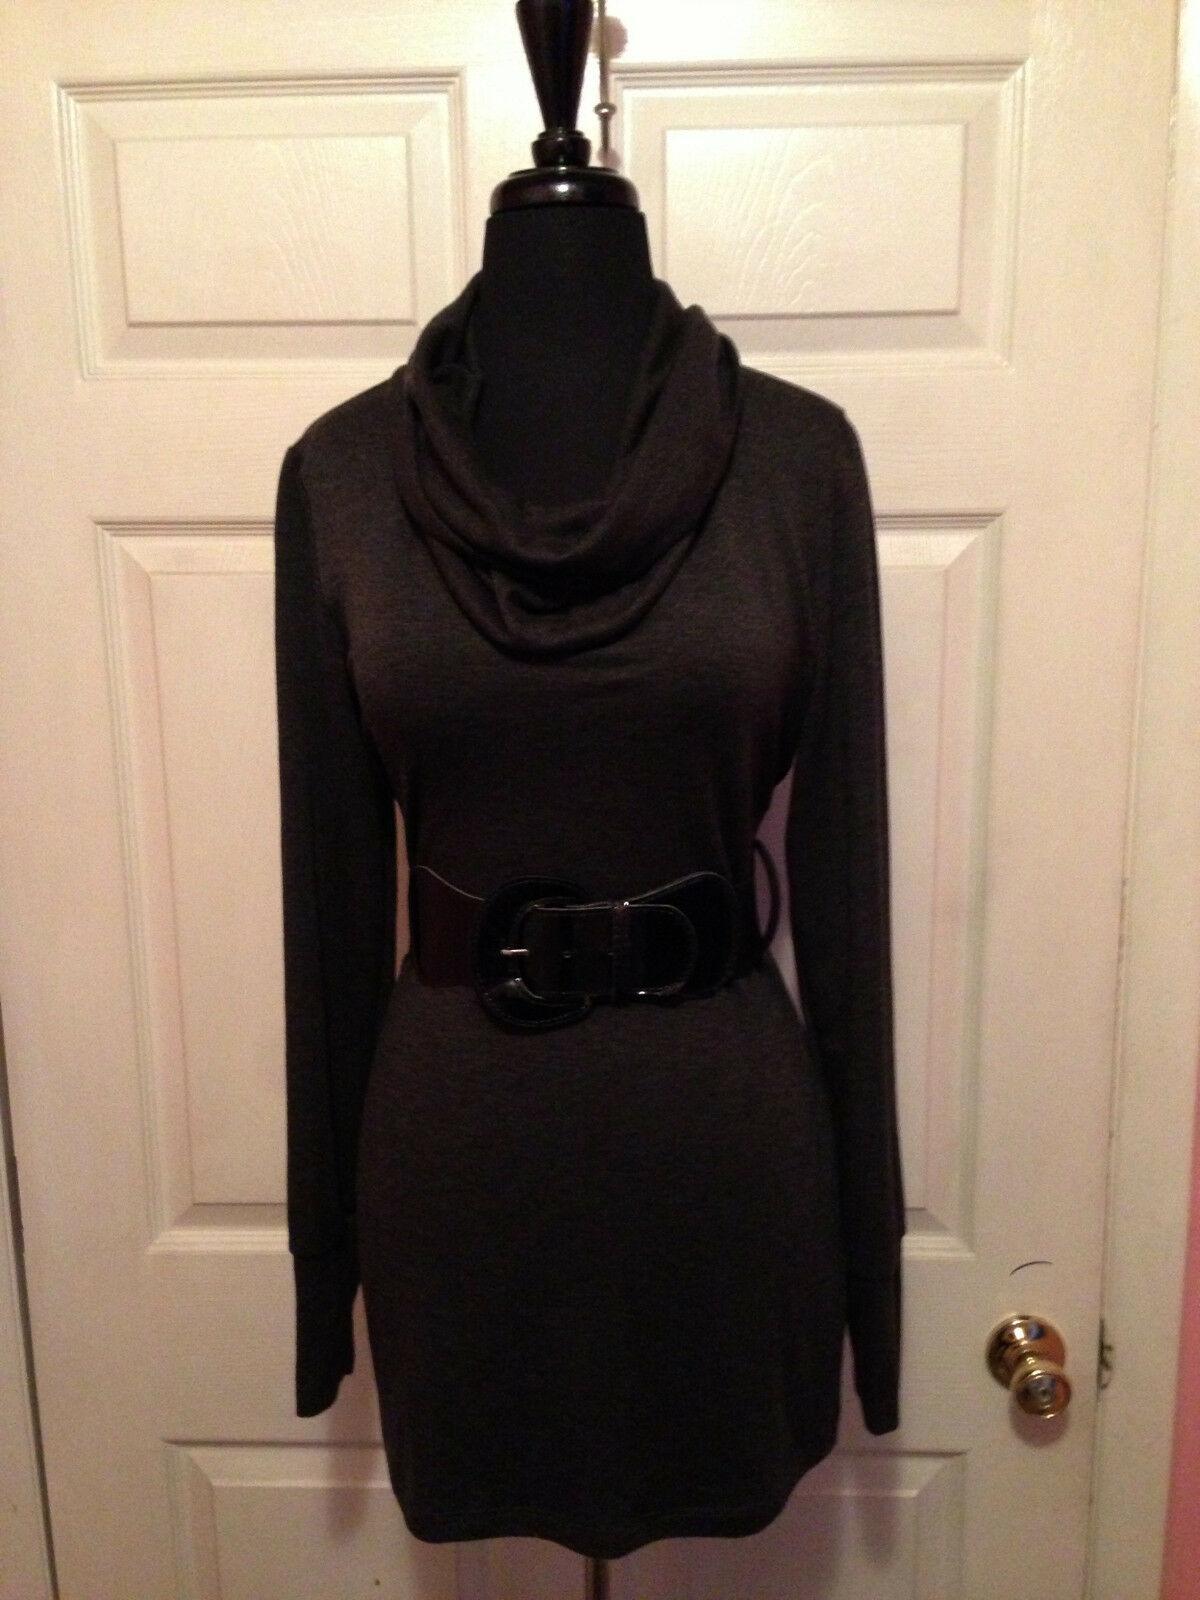 NWT WOMEN'S SWEATERS FROM THE LOFT, H&M, FOREVER 21, OLD NAVY